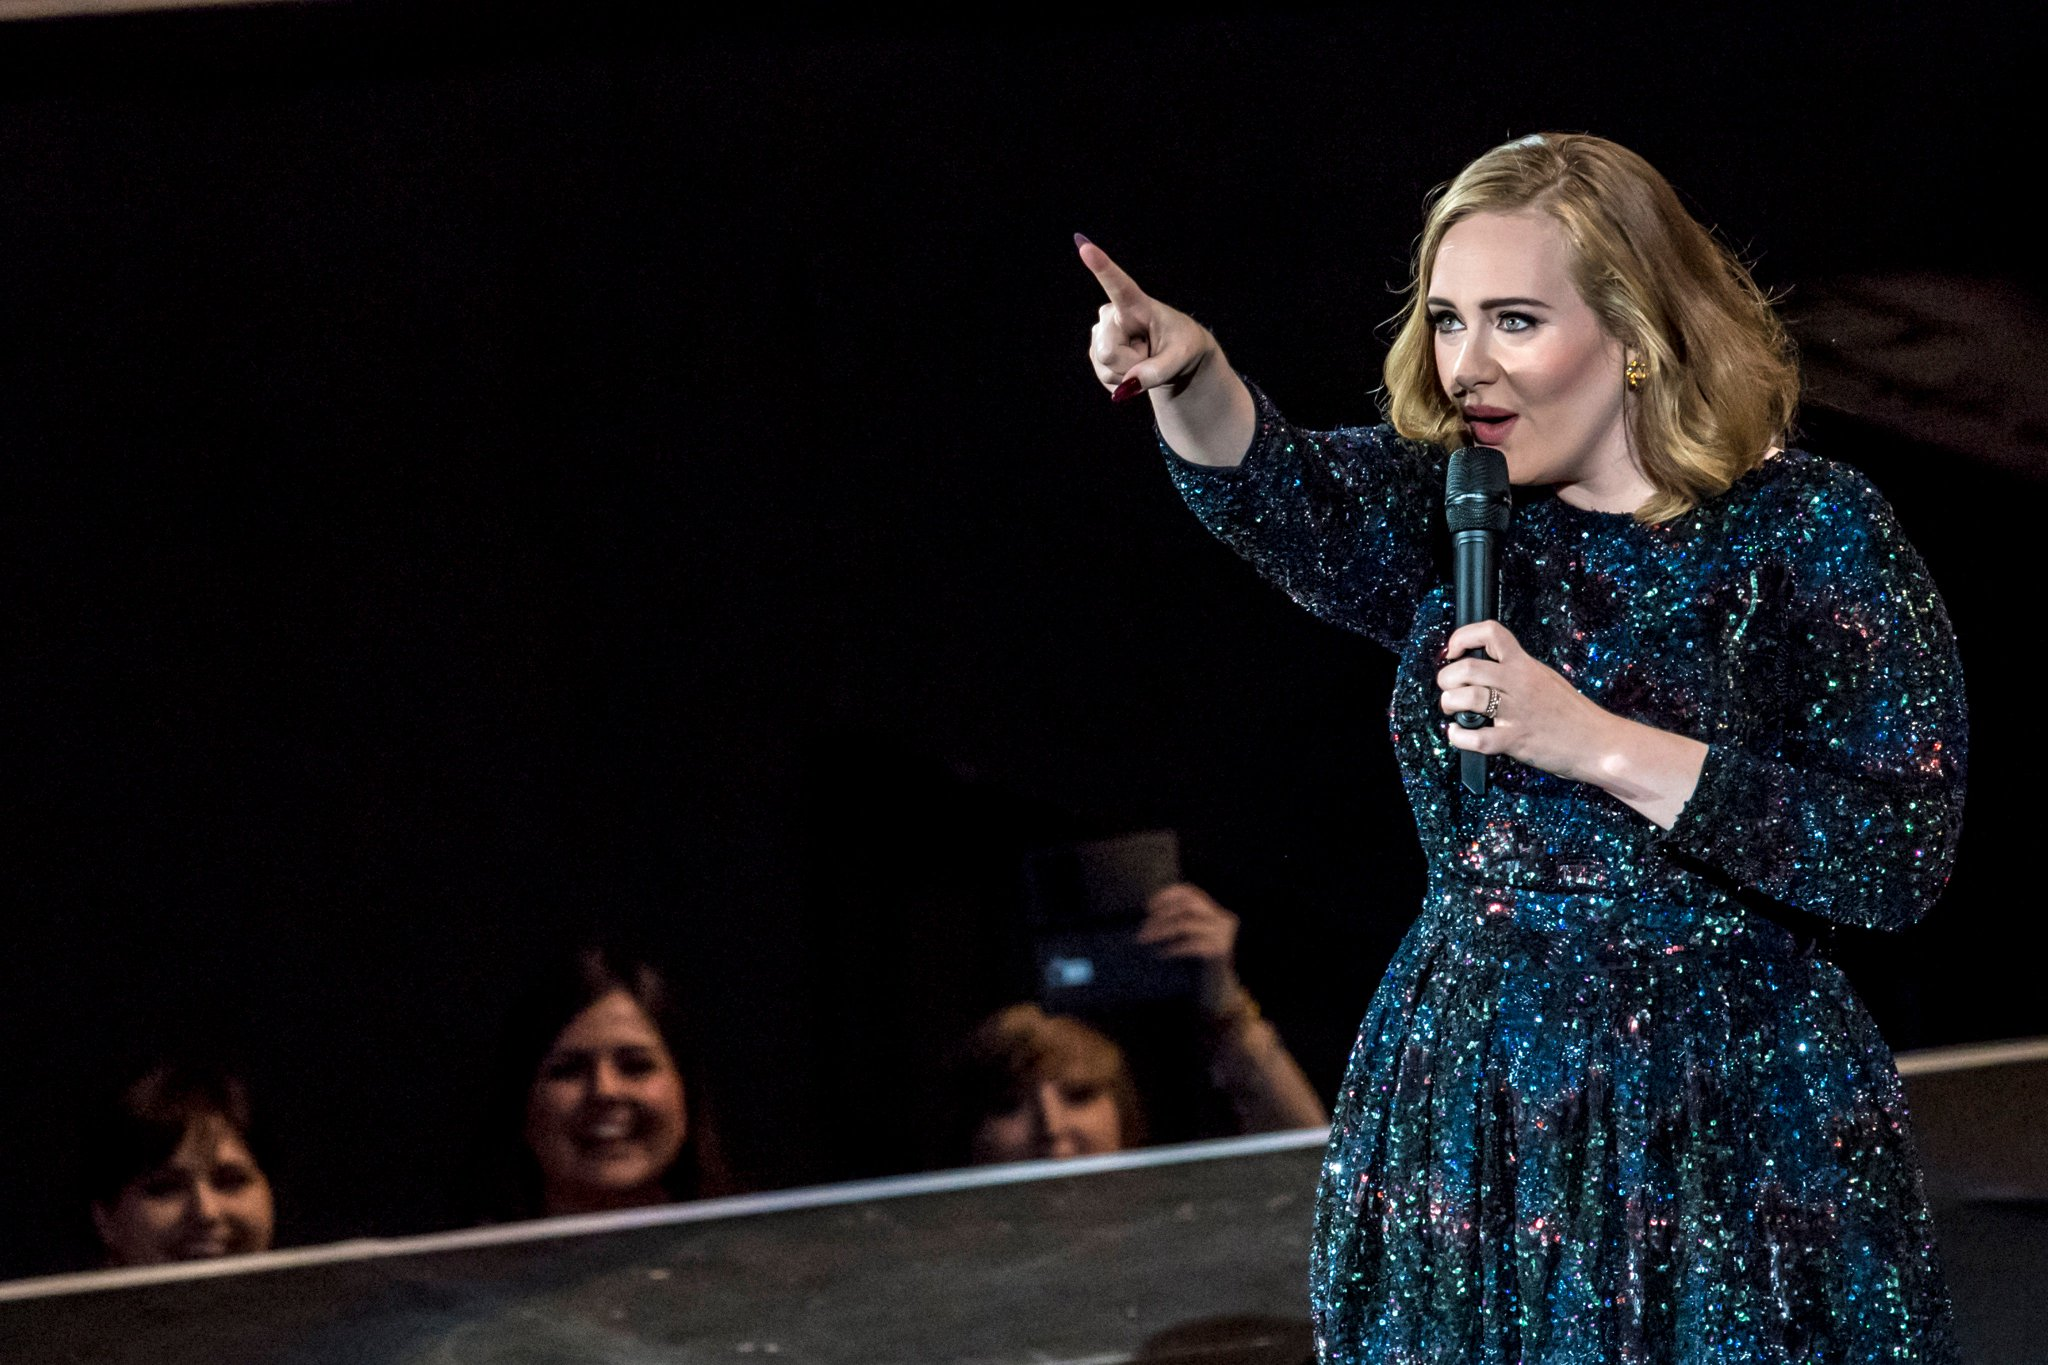 Happy birthday Adele! From pranks to photobombs, here are 10 of her funniest moments